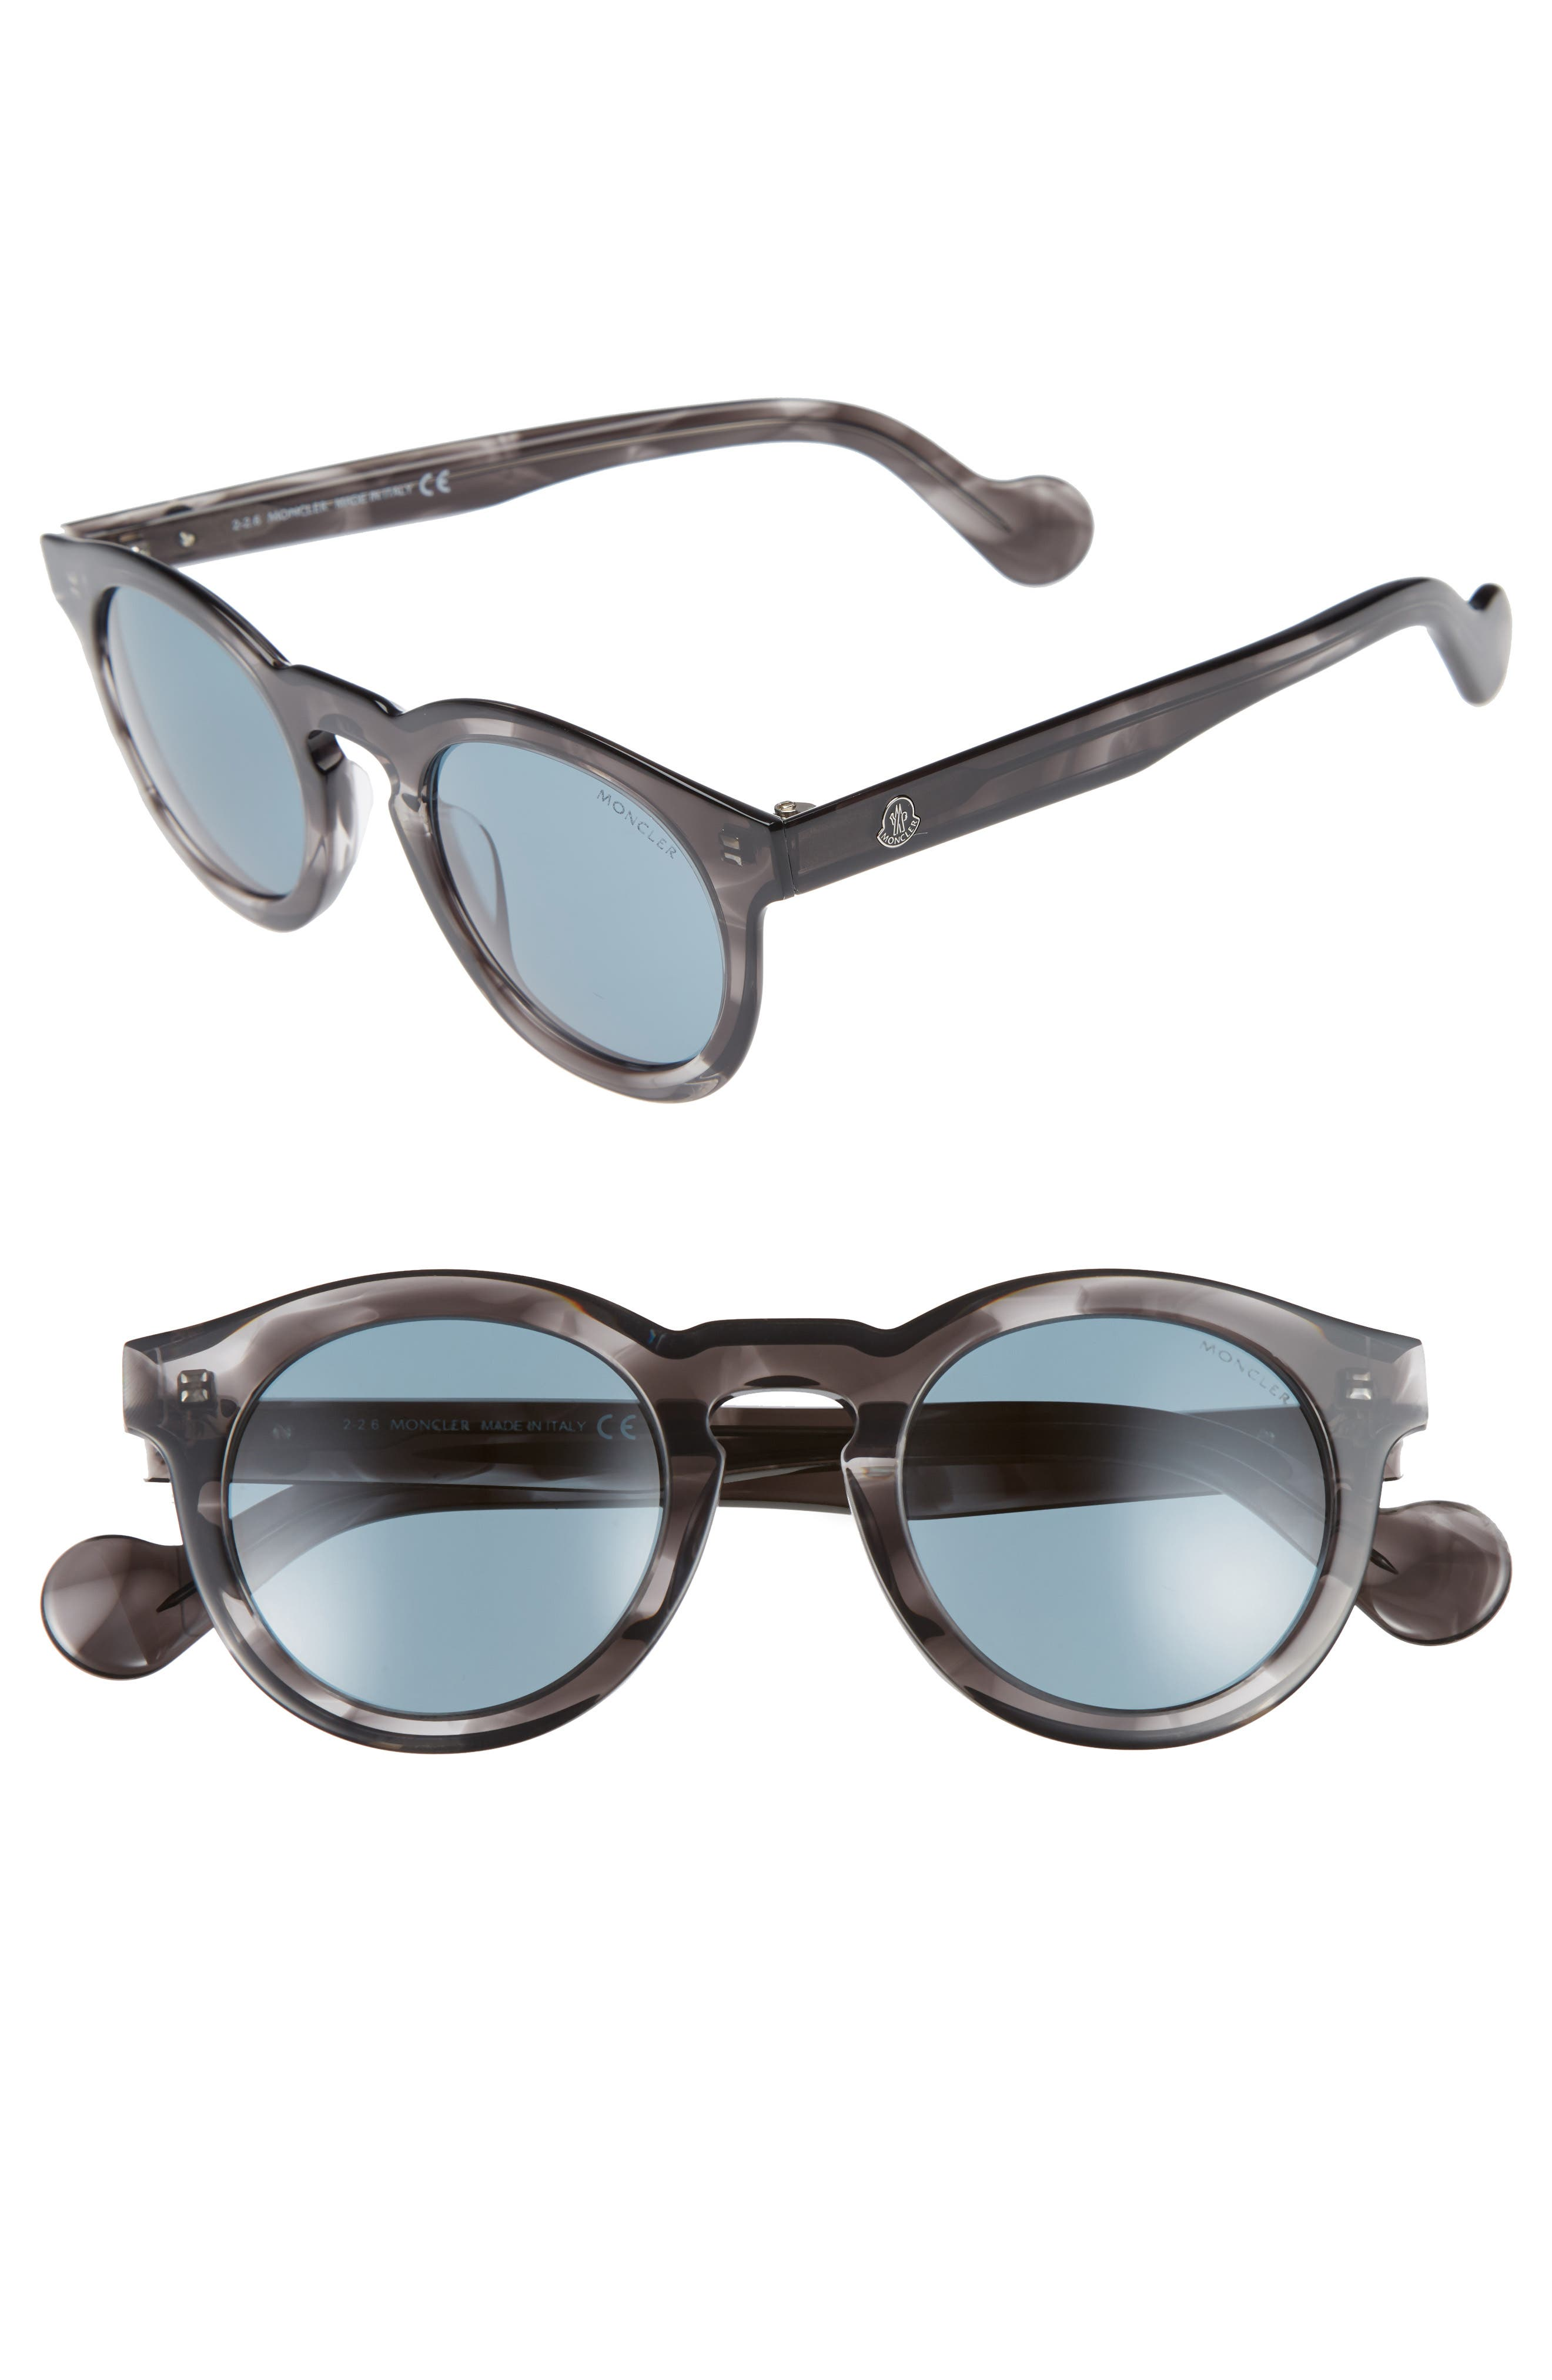 49mm Keyhole Sunglasses,                         Main,                         color, Grey/ Other/ Blue